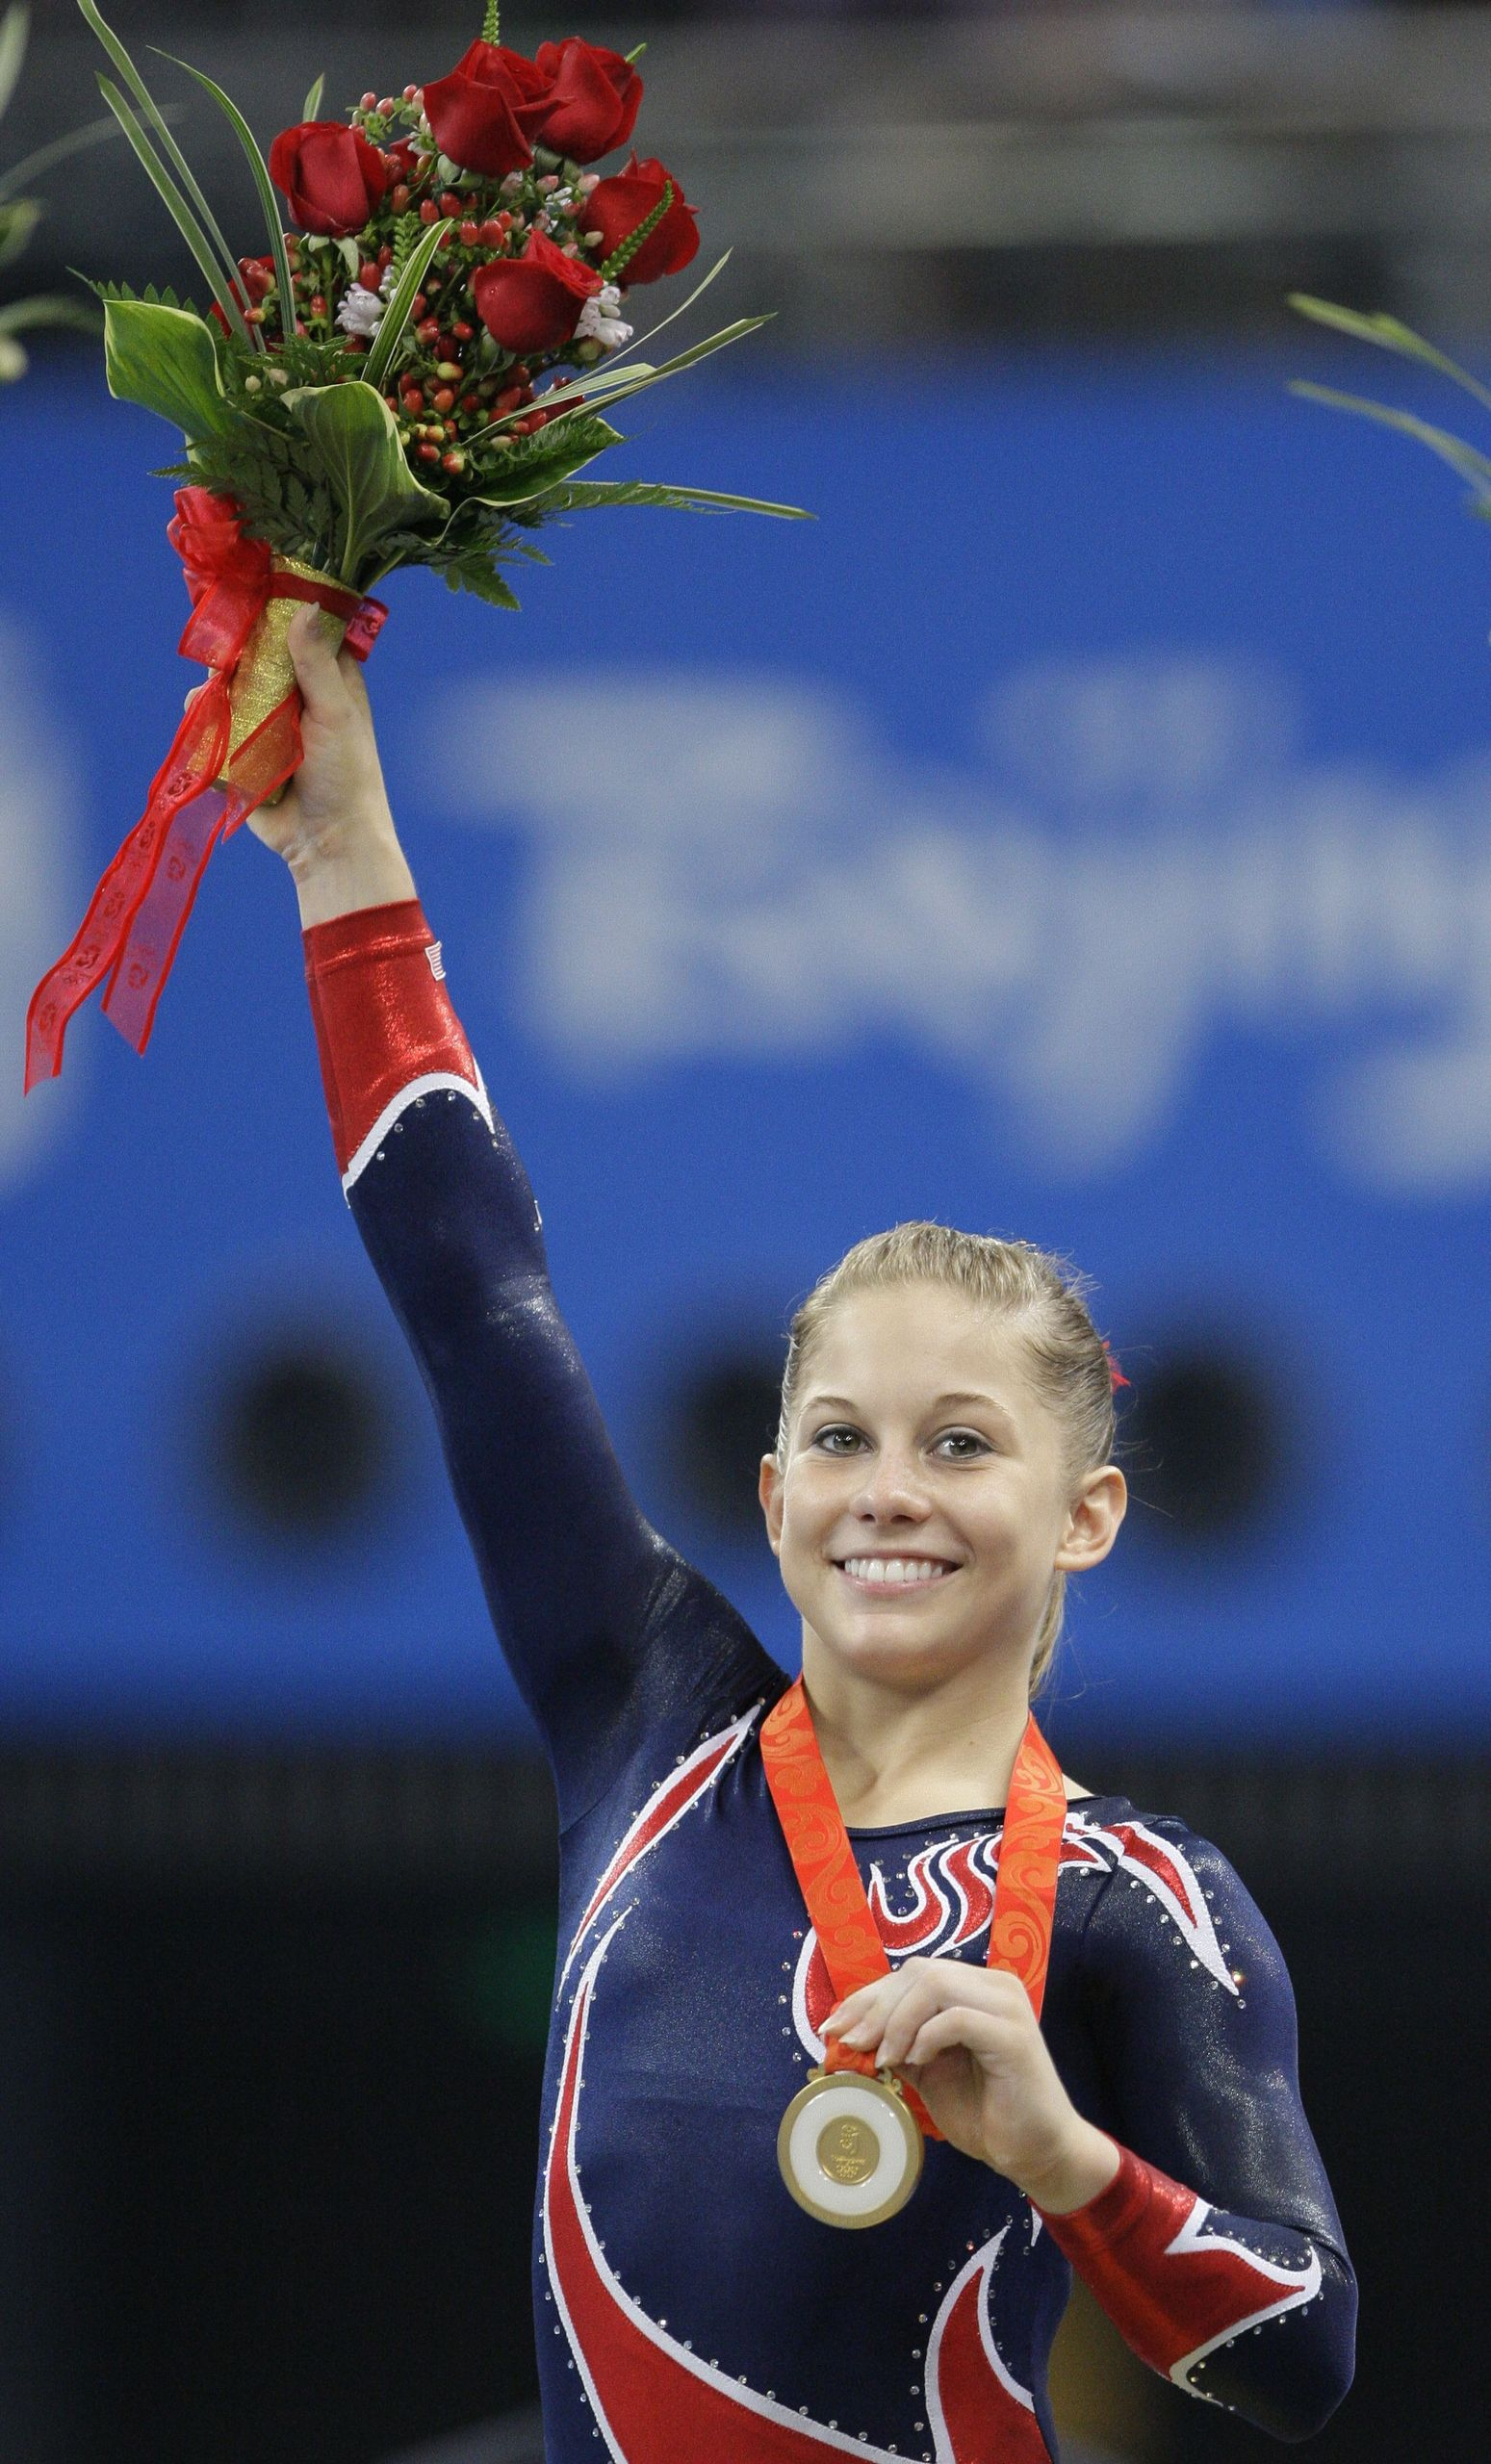 Watch Shawn Johnson 4 Olympic medals in gymnastics video